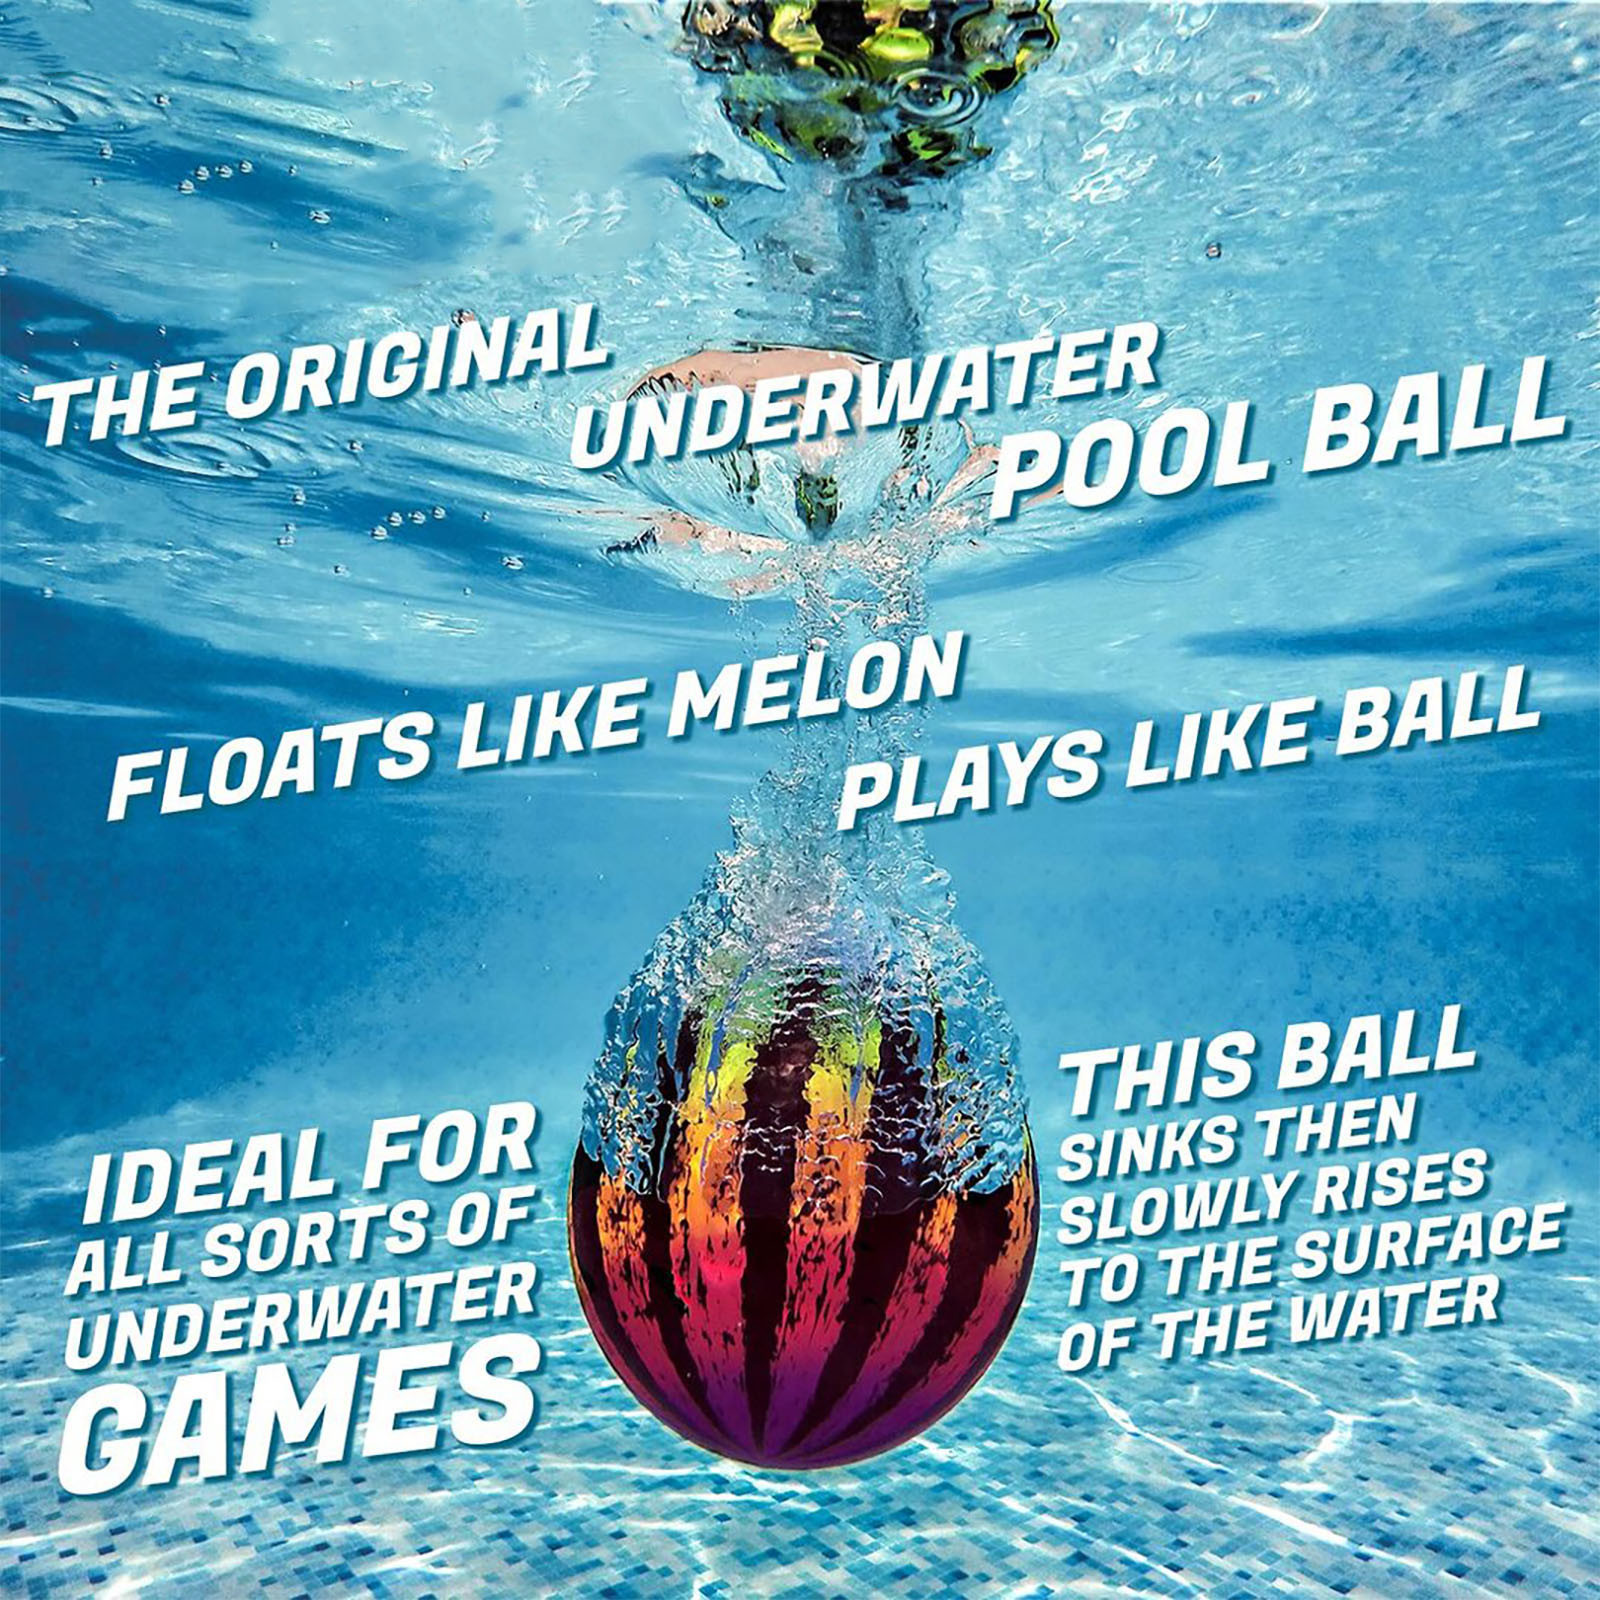 Water Balloons Funny Beach Swimming Pool Toys Watermelon Ball The Ultimate Swimming Pool Game For Under Water Passing